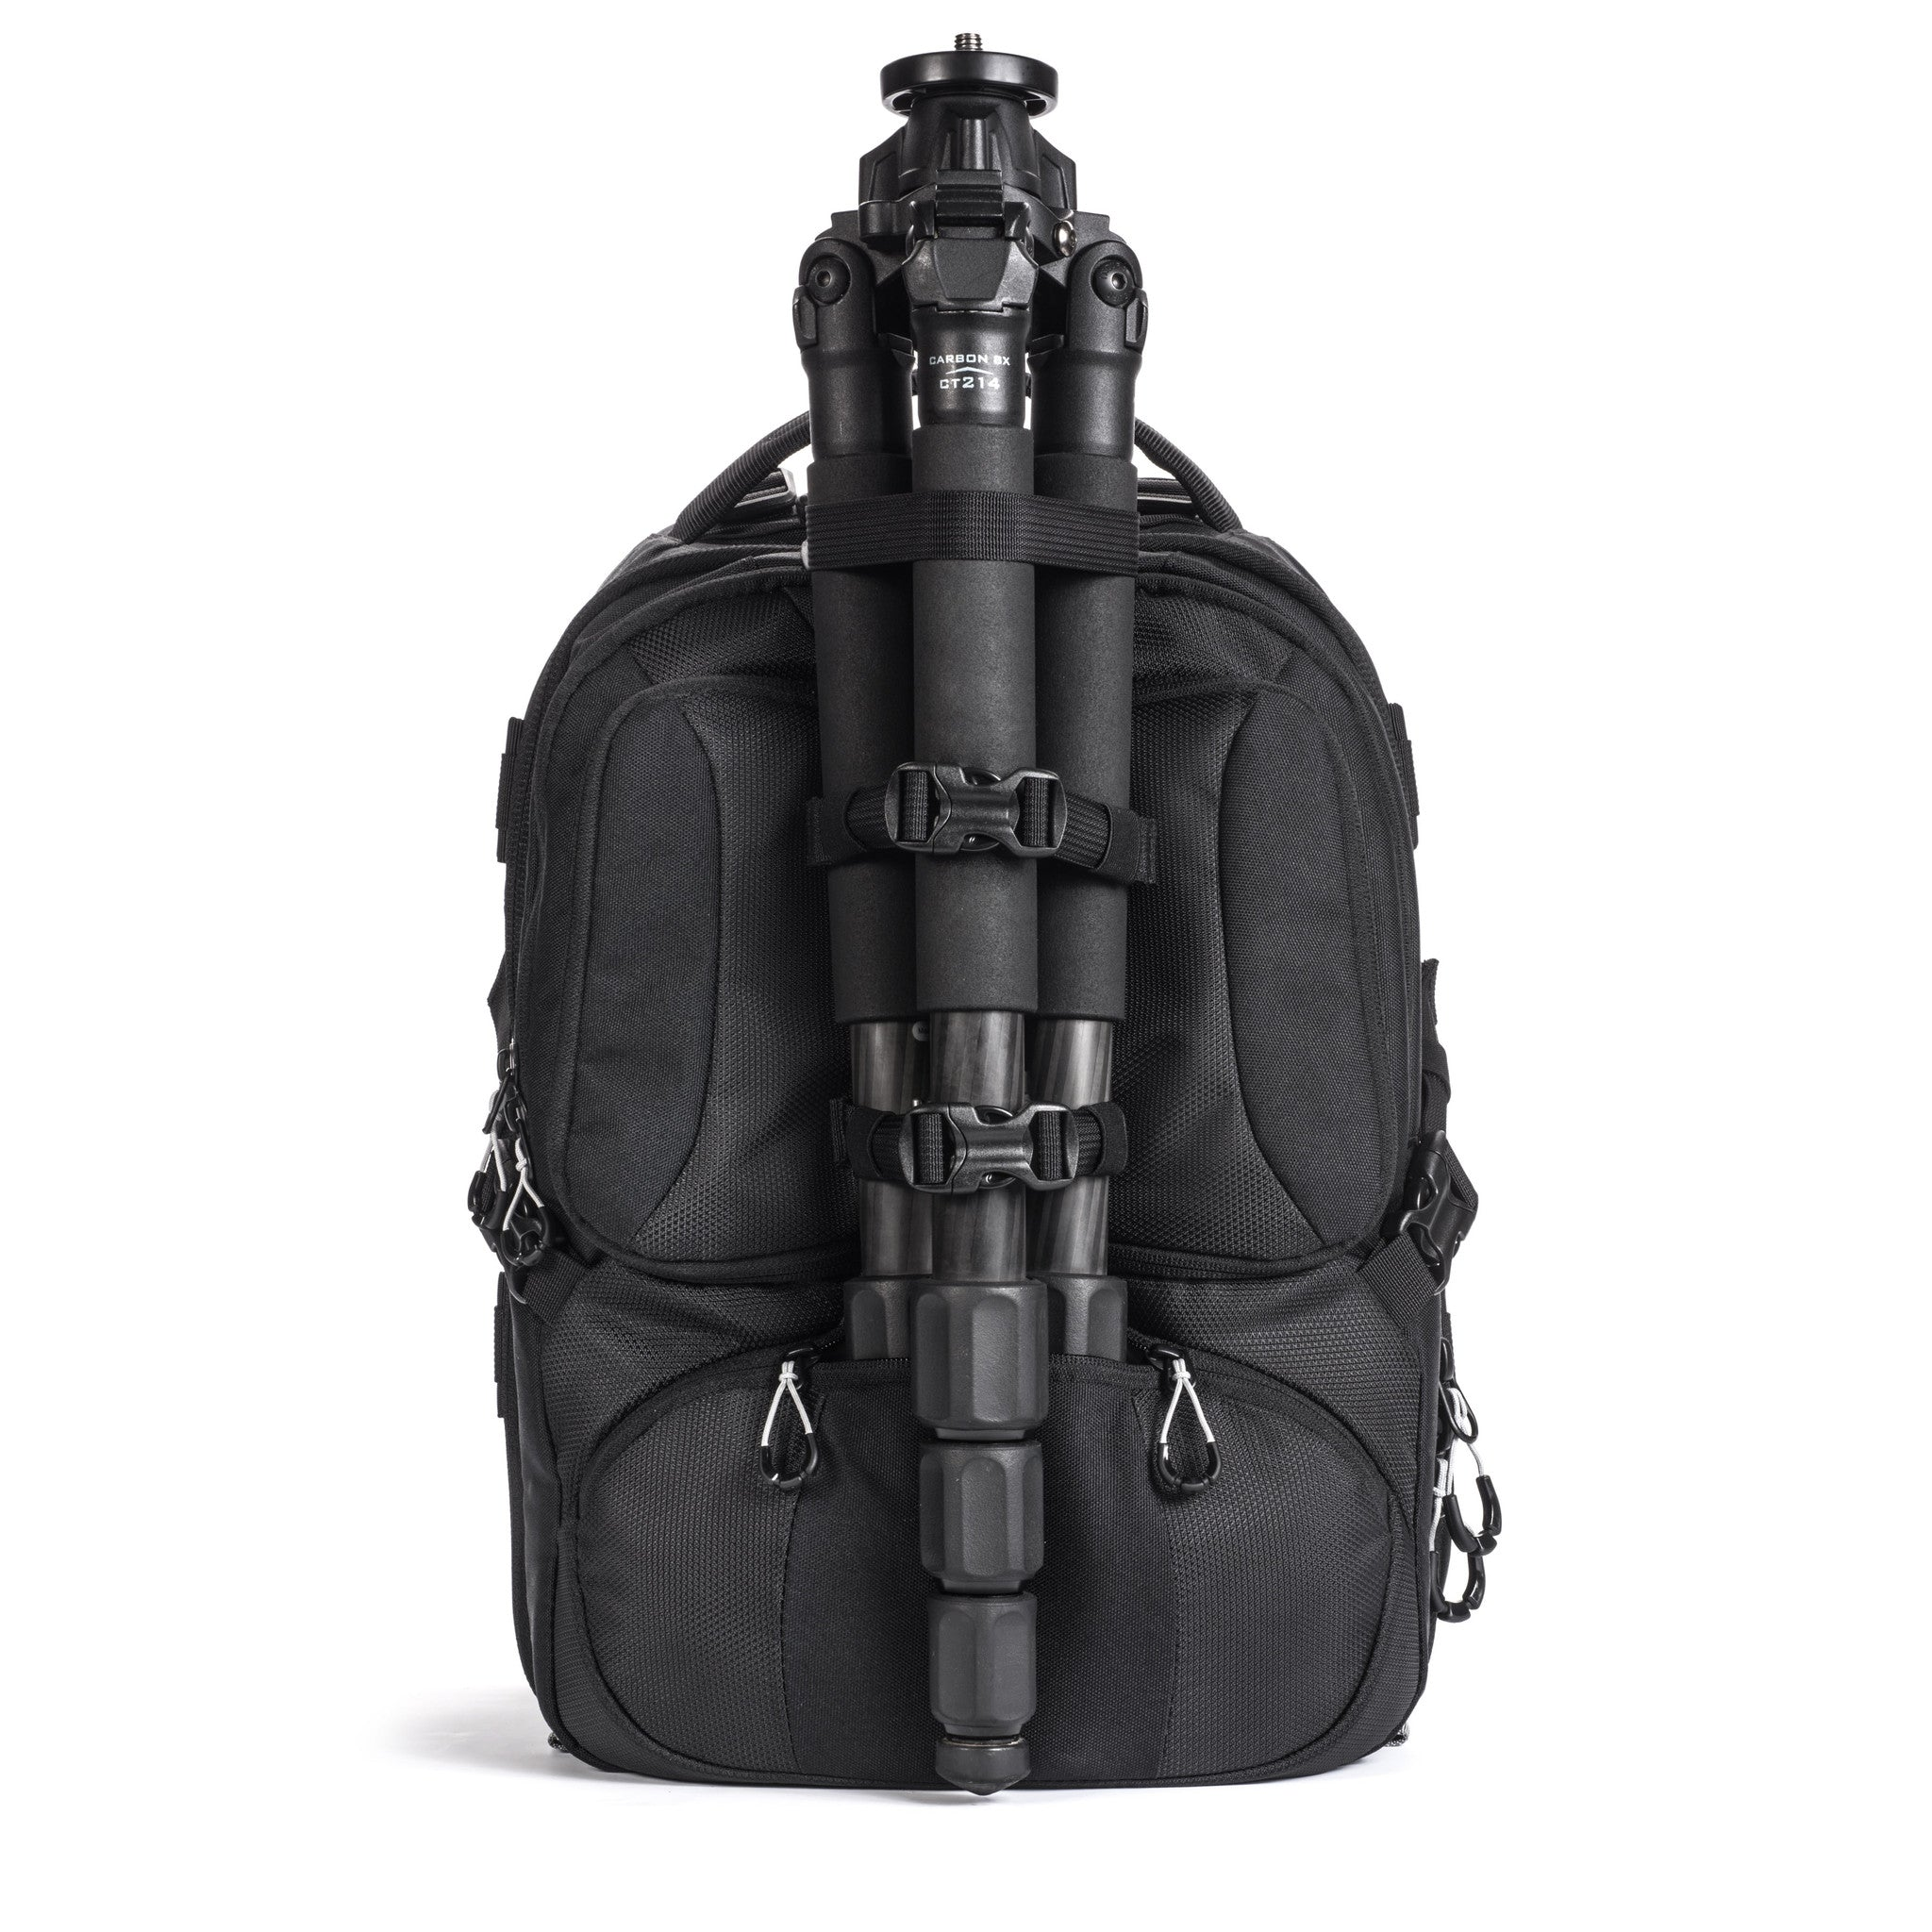 1ce27c248a8 Tamrac Anvil 17 Pro Camera Backpack - Free Shipping